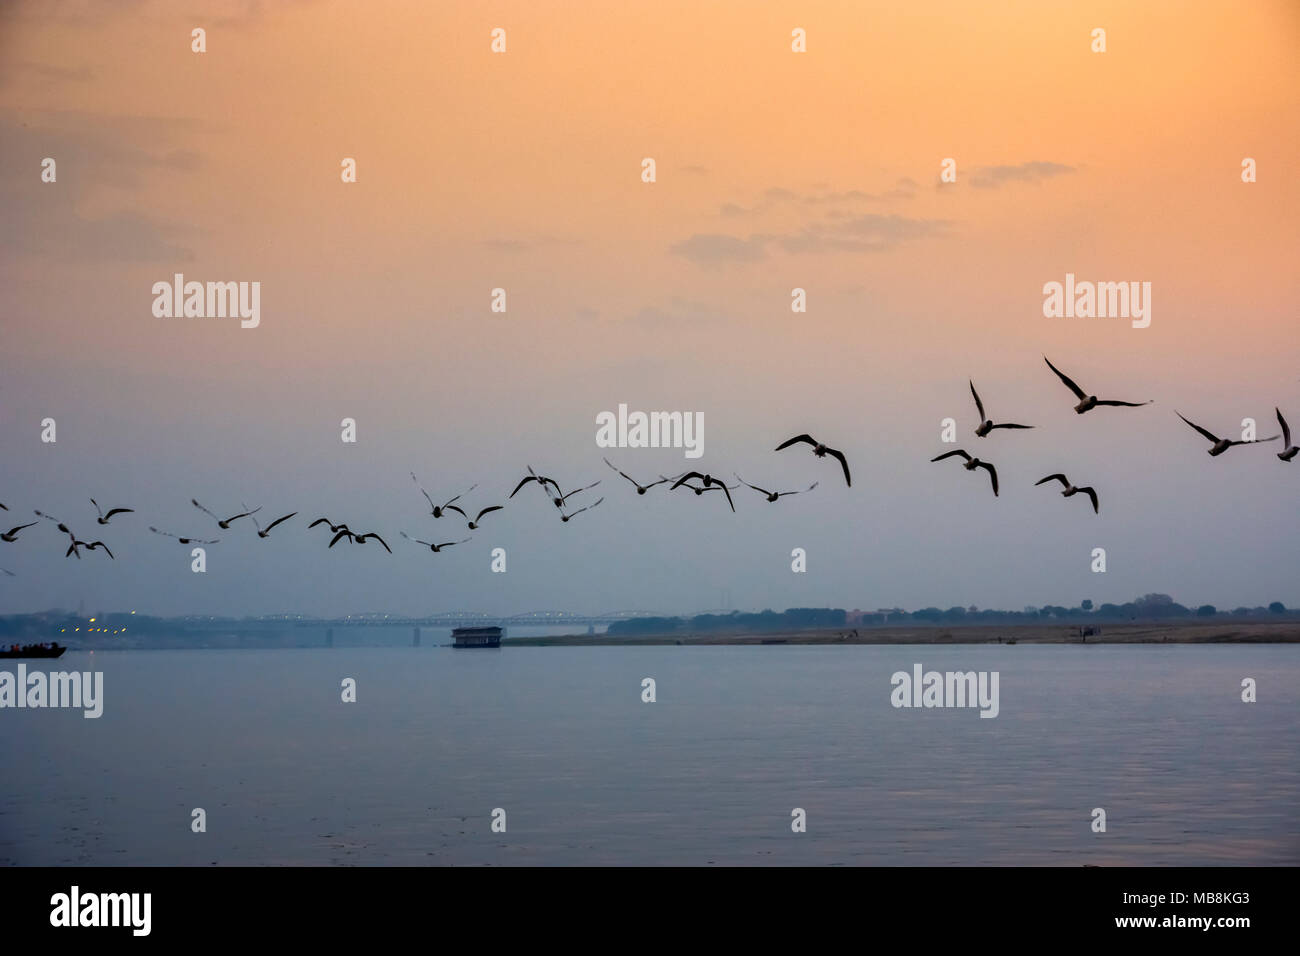 A flock of birds flies over the Ganges River at sunset at Varanesi, Uttar Pradesh, India - Stock Image